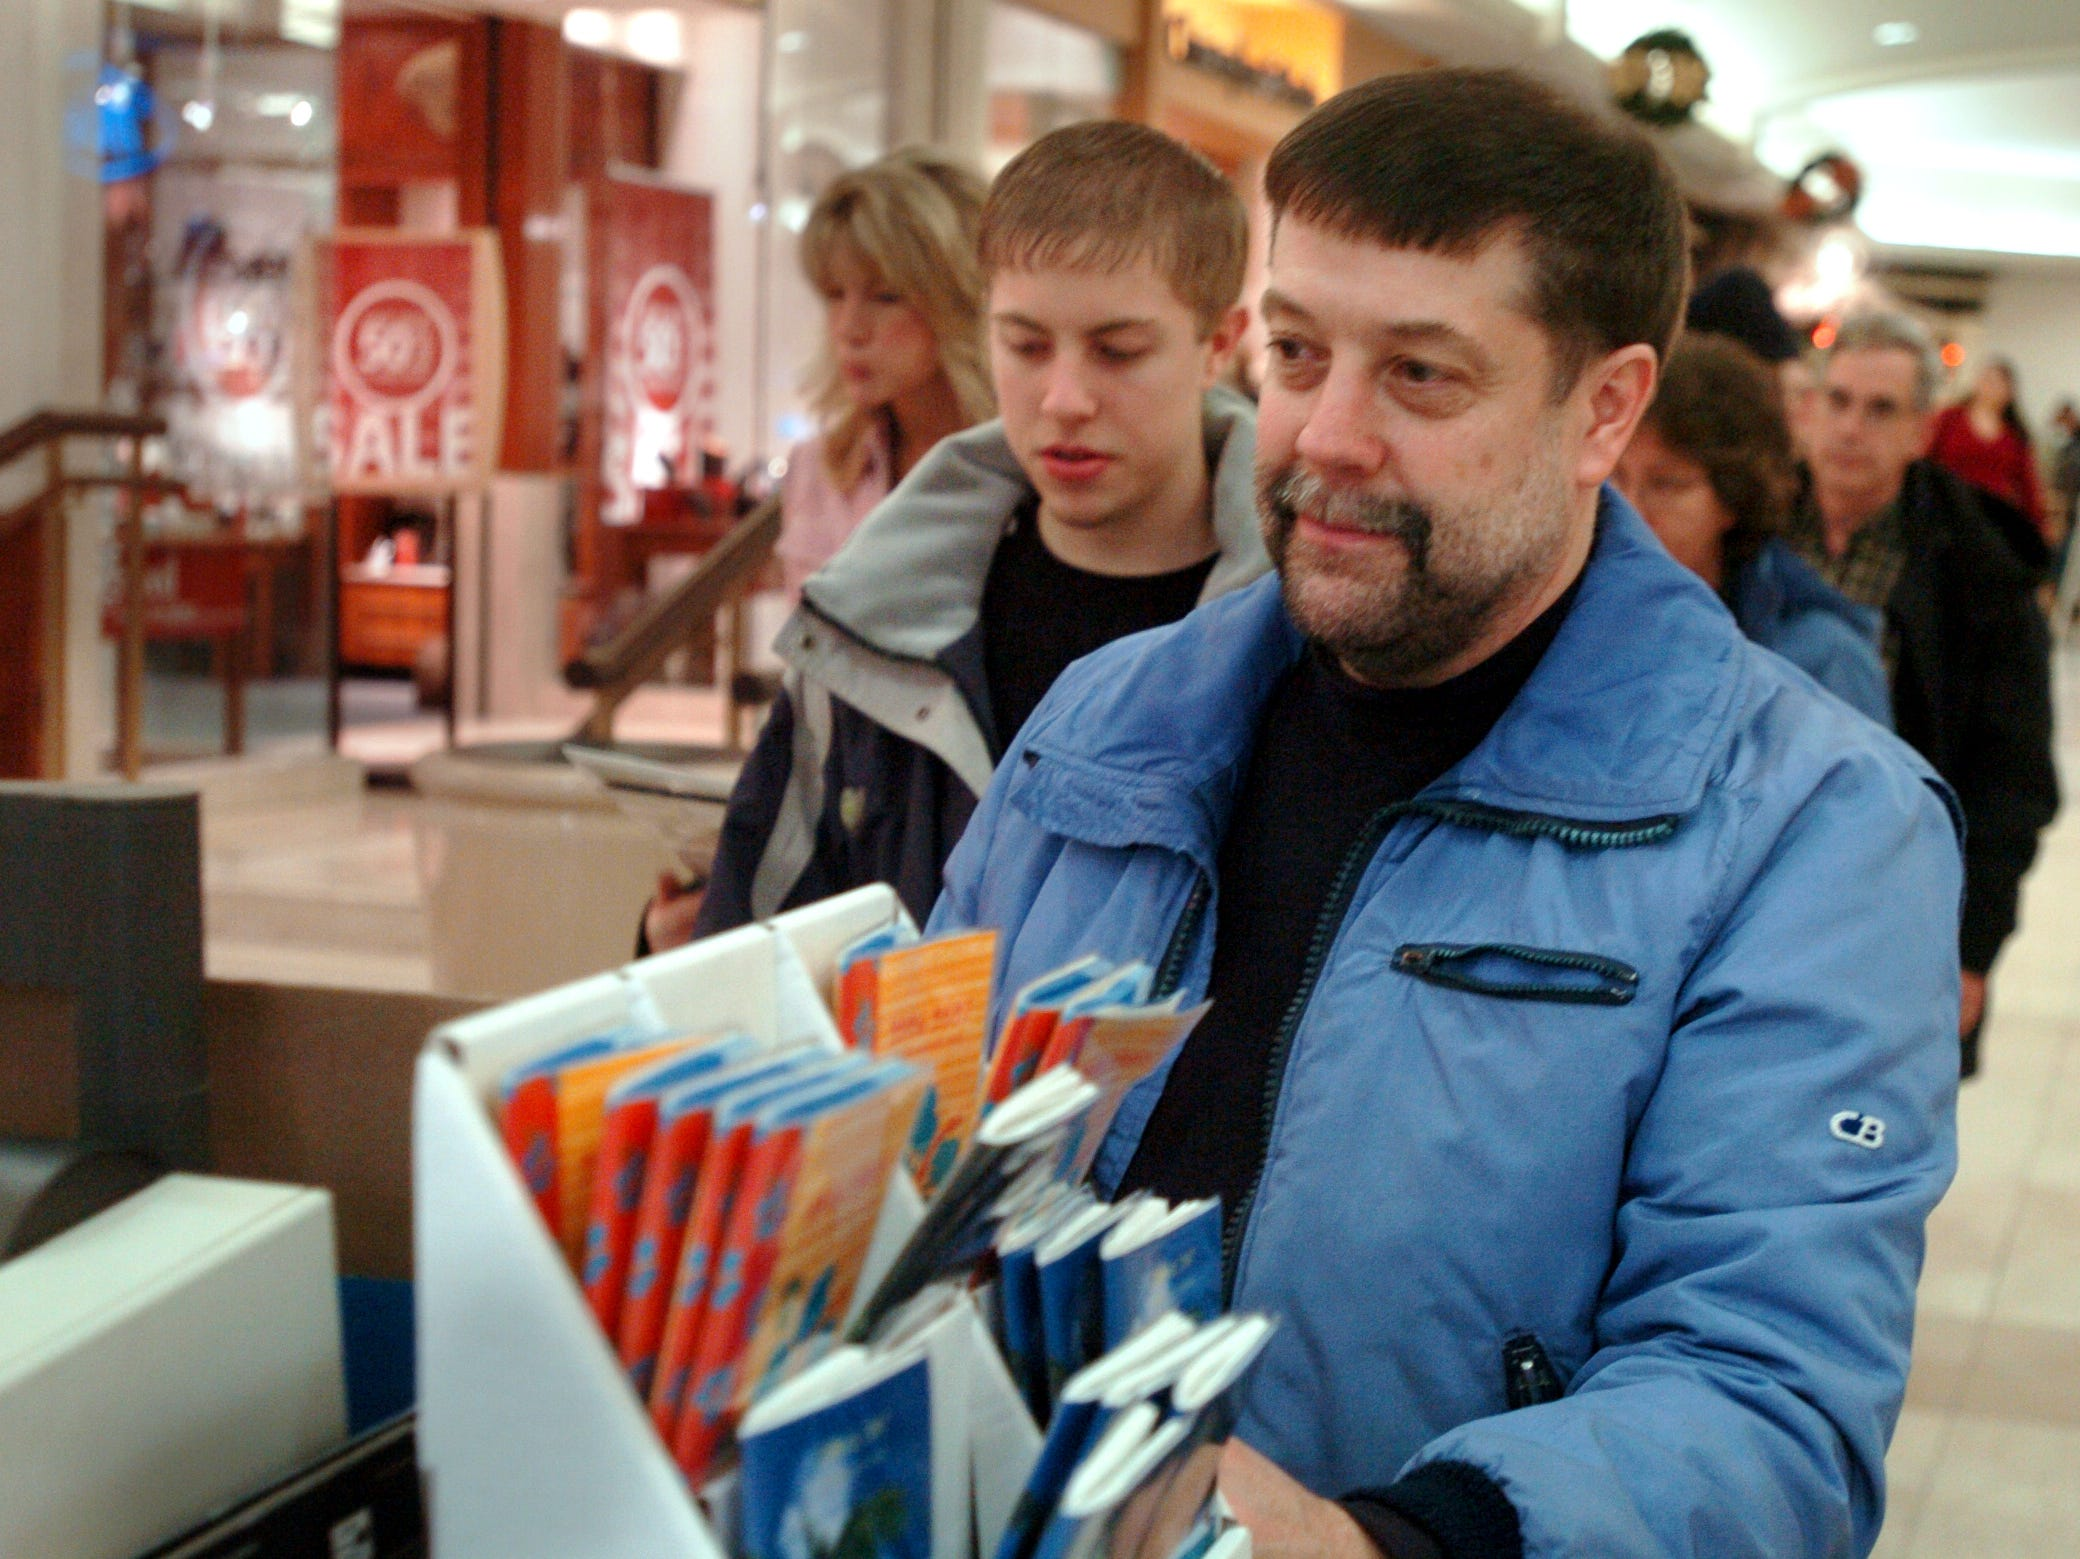 Craig Wakeley of Endicott buys a calendar at the Oakdale Mall in Johnson City on Dec. 26, 2005.